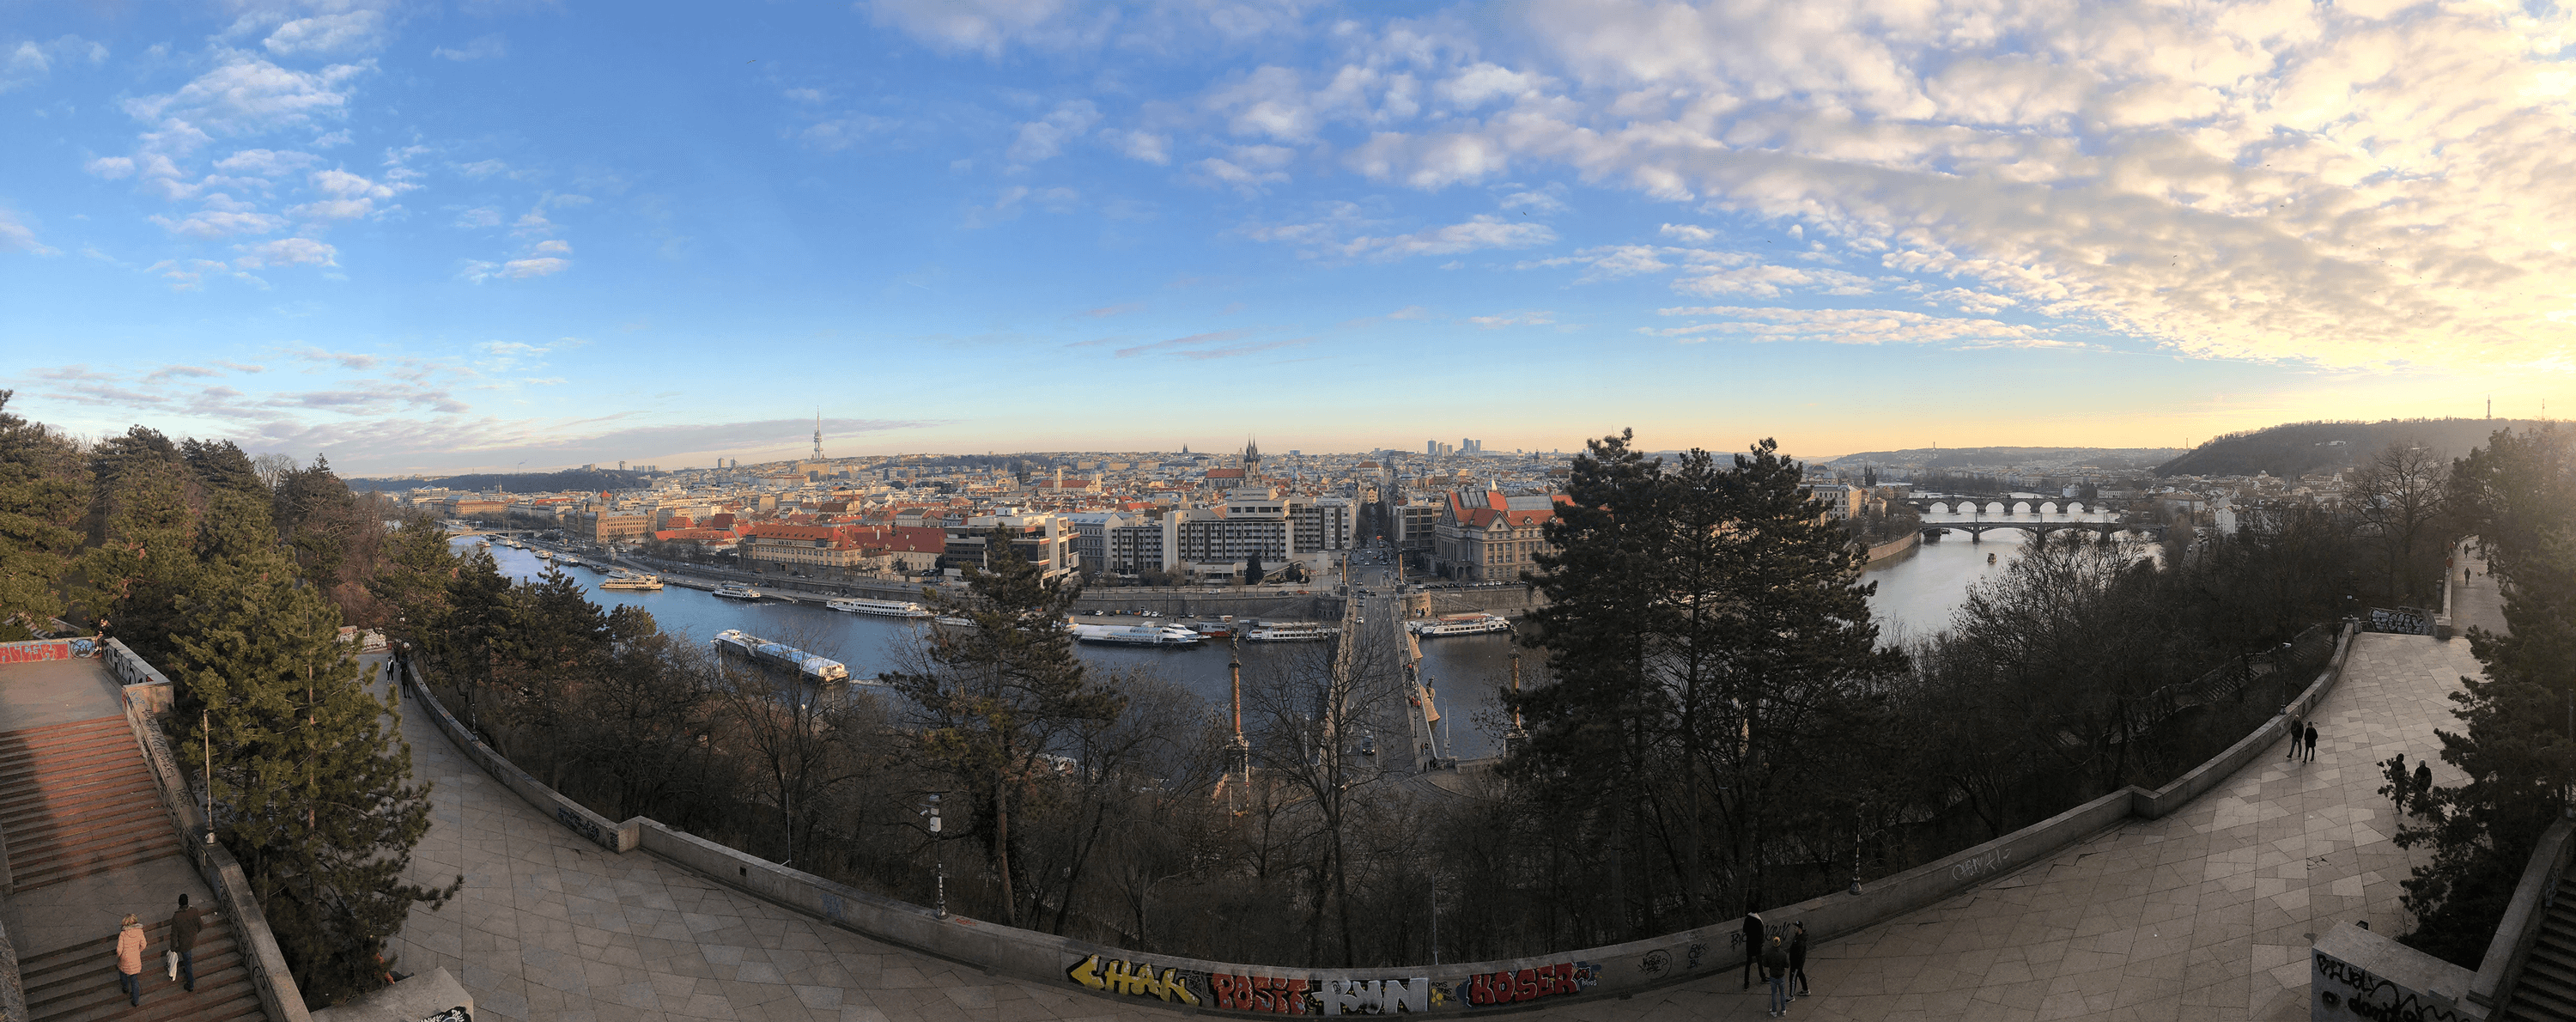 metronome-prague-city-views